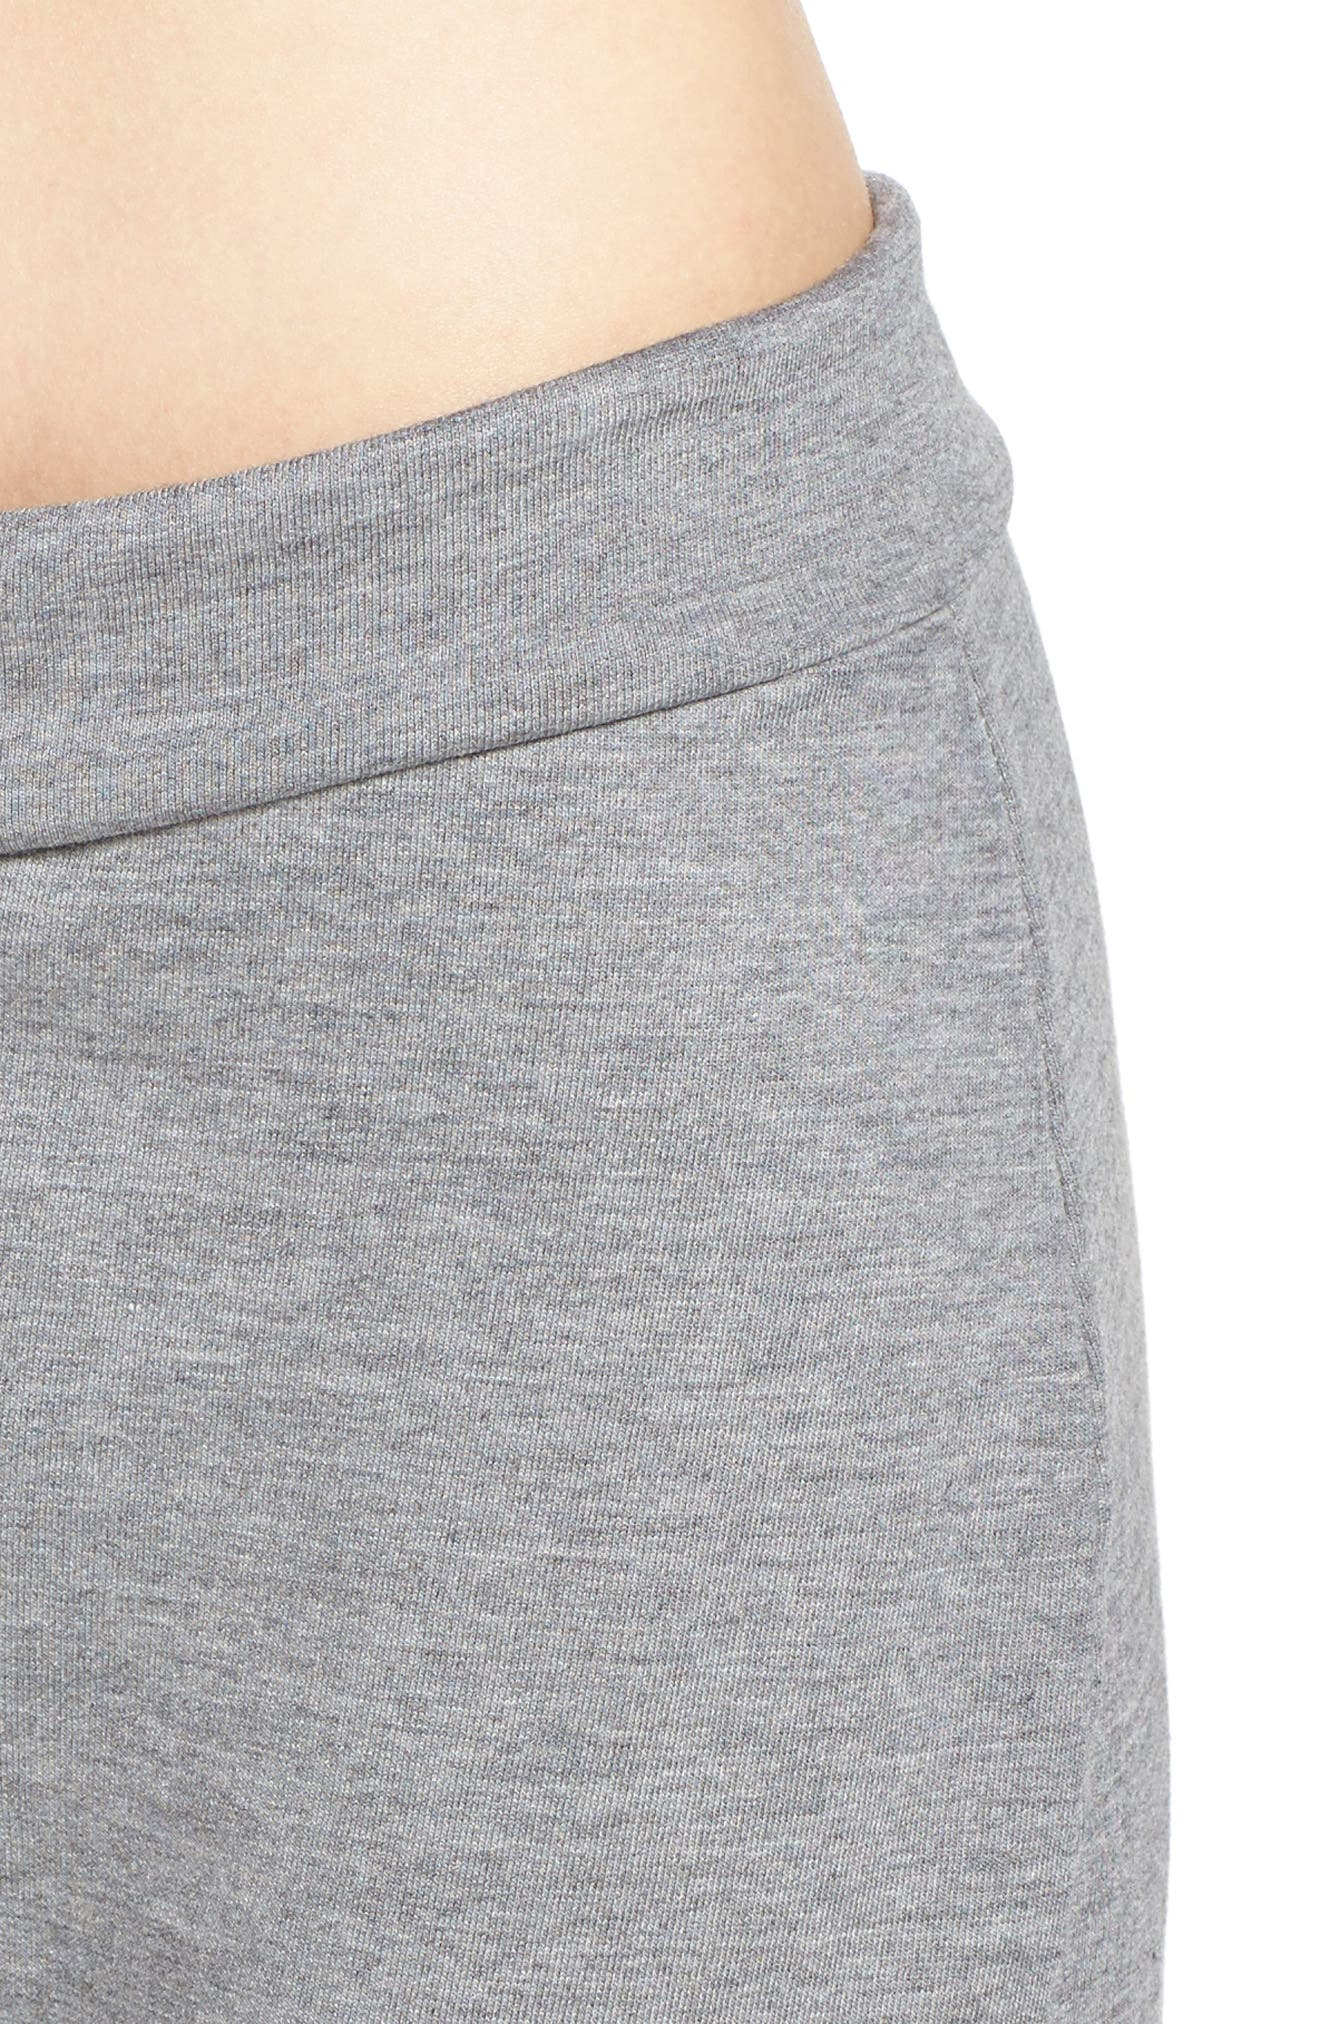 Alternate Image 4  - Honeydew Intimates French Terry Lounge Pants (Nordstrom Exclusive)